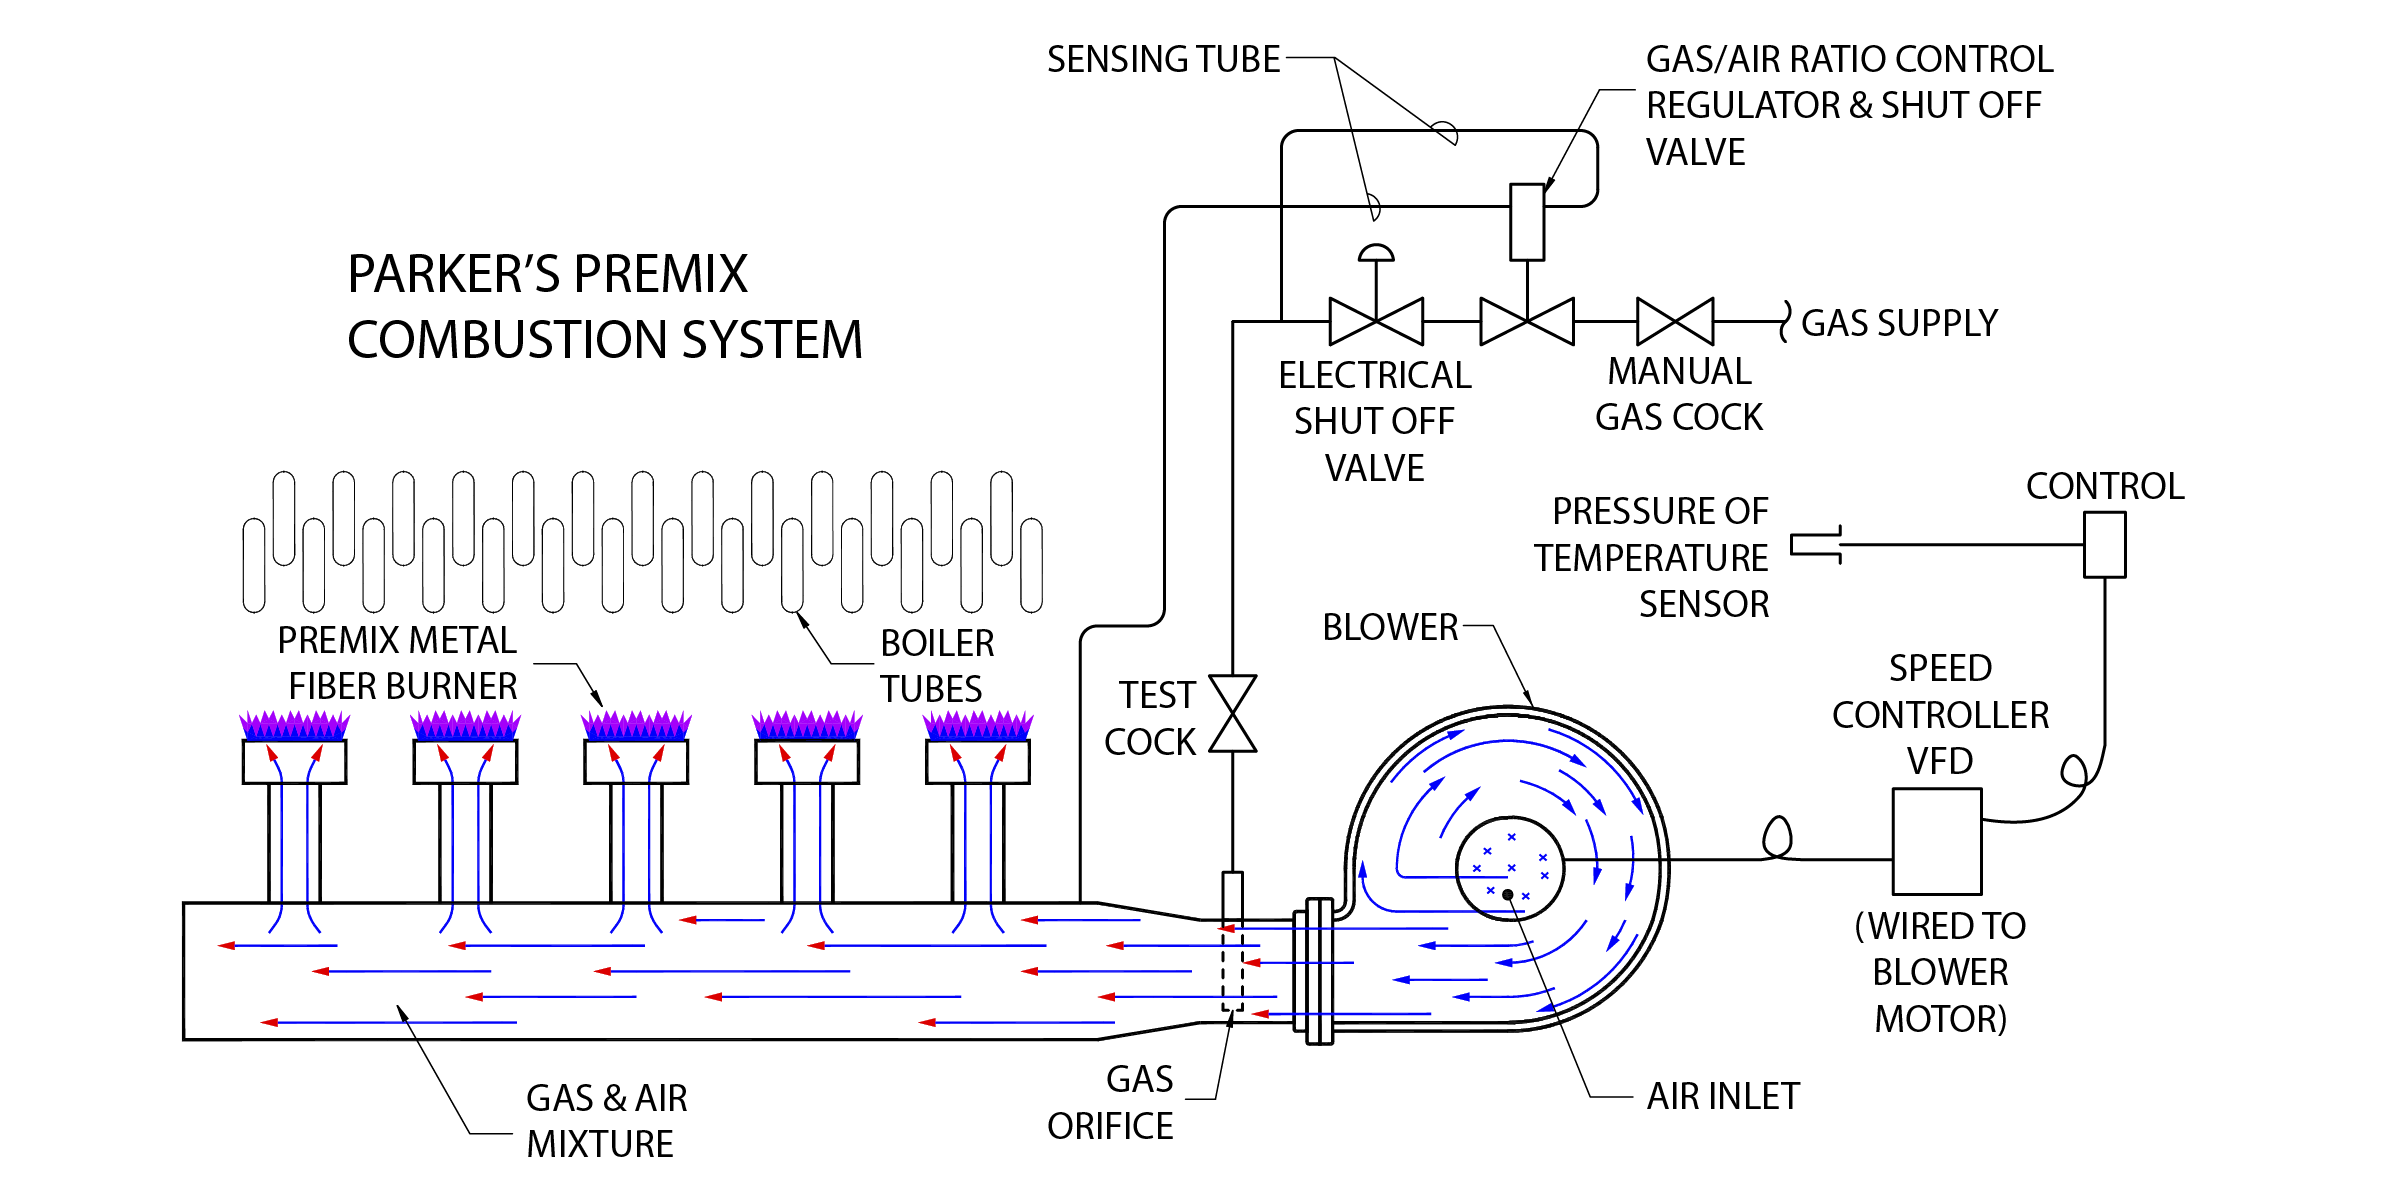 Parker Boiler Wiring Diagram Free Download Guitar Condensing Boilers Power Burner Low Nox